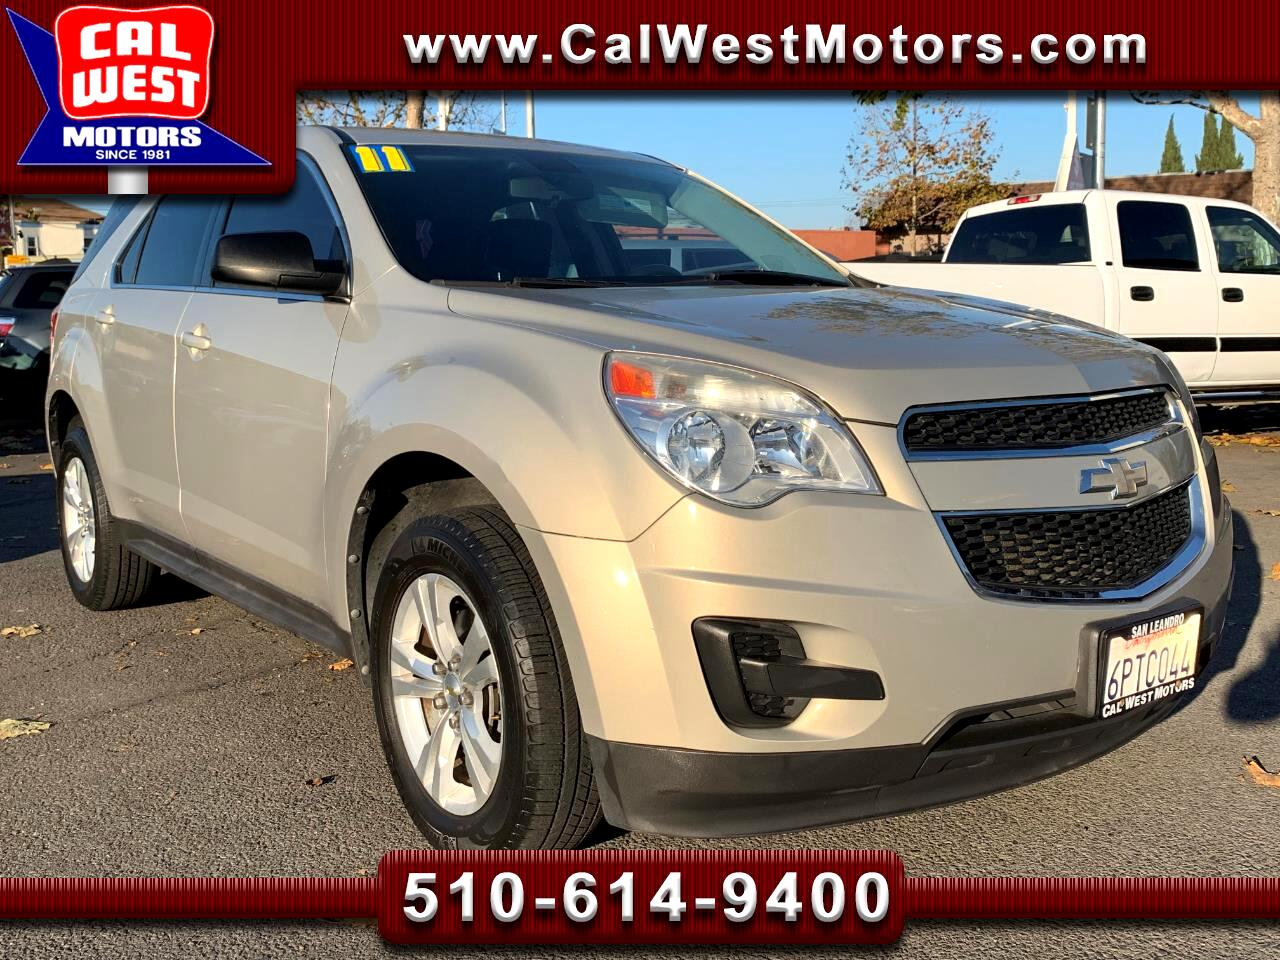 2011 Chevrolet Equinox LS 5D SUV Blu2th MPG+ SuperClean GreatMtnceHist